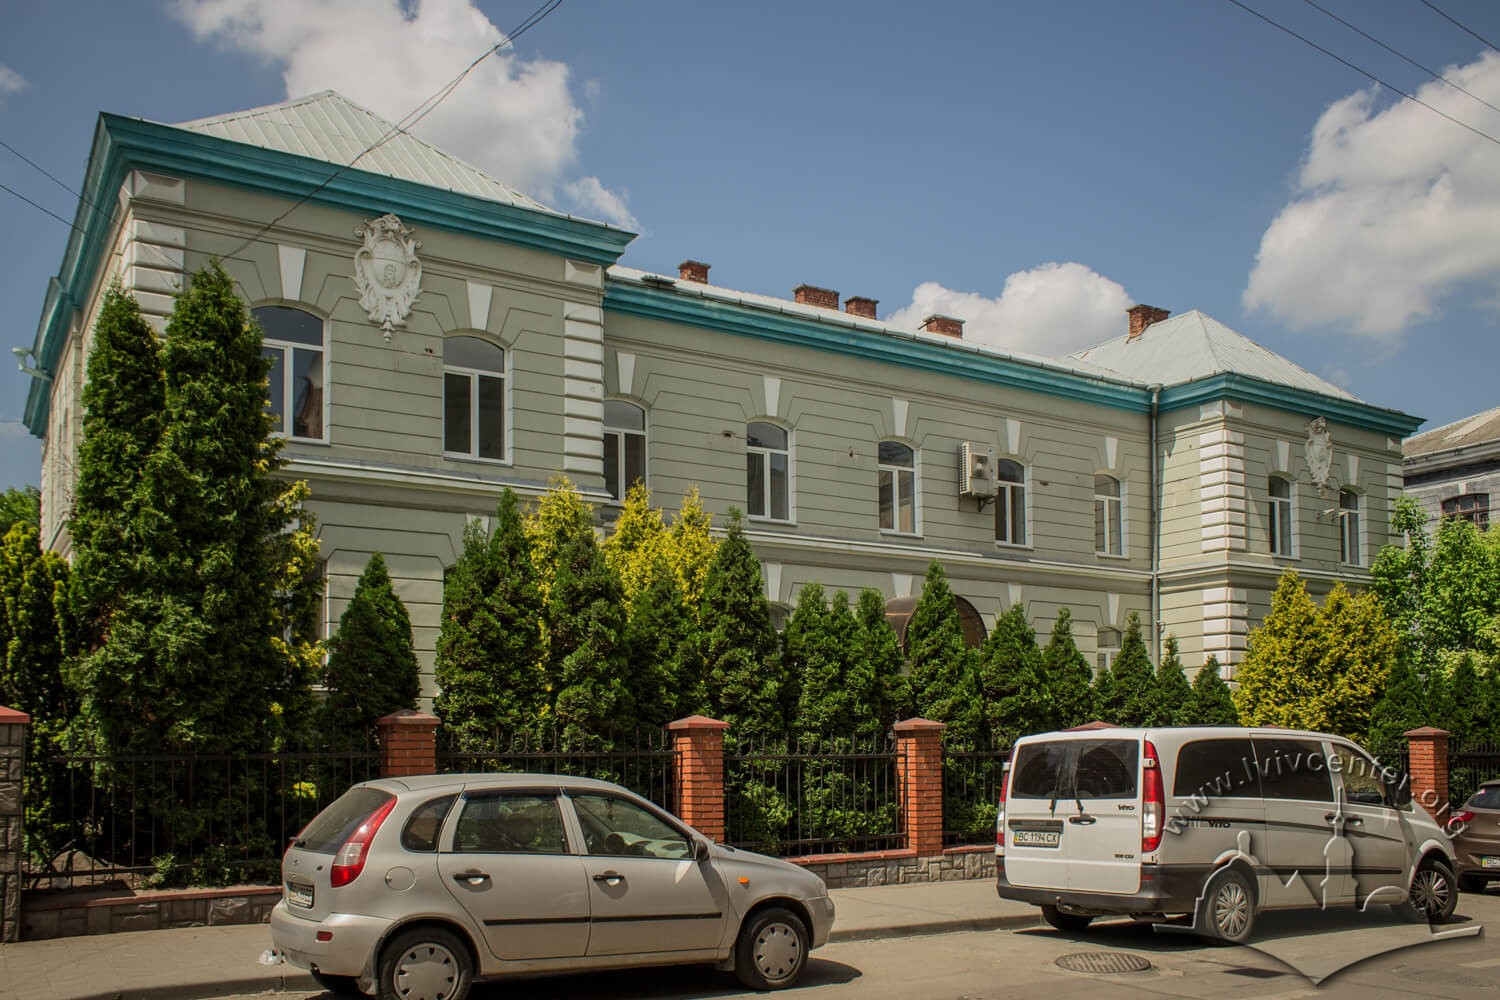 Vul. Henerala Hrekova, 3. In this building (or in #5) during interwar period, the city epidemiological hospital was located/Photo courtesy of Olha Zarechnyuk, 2016